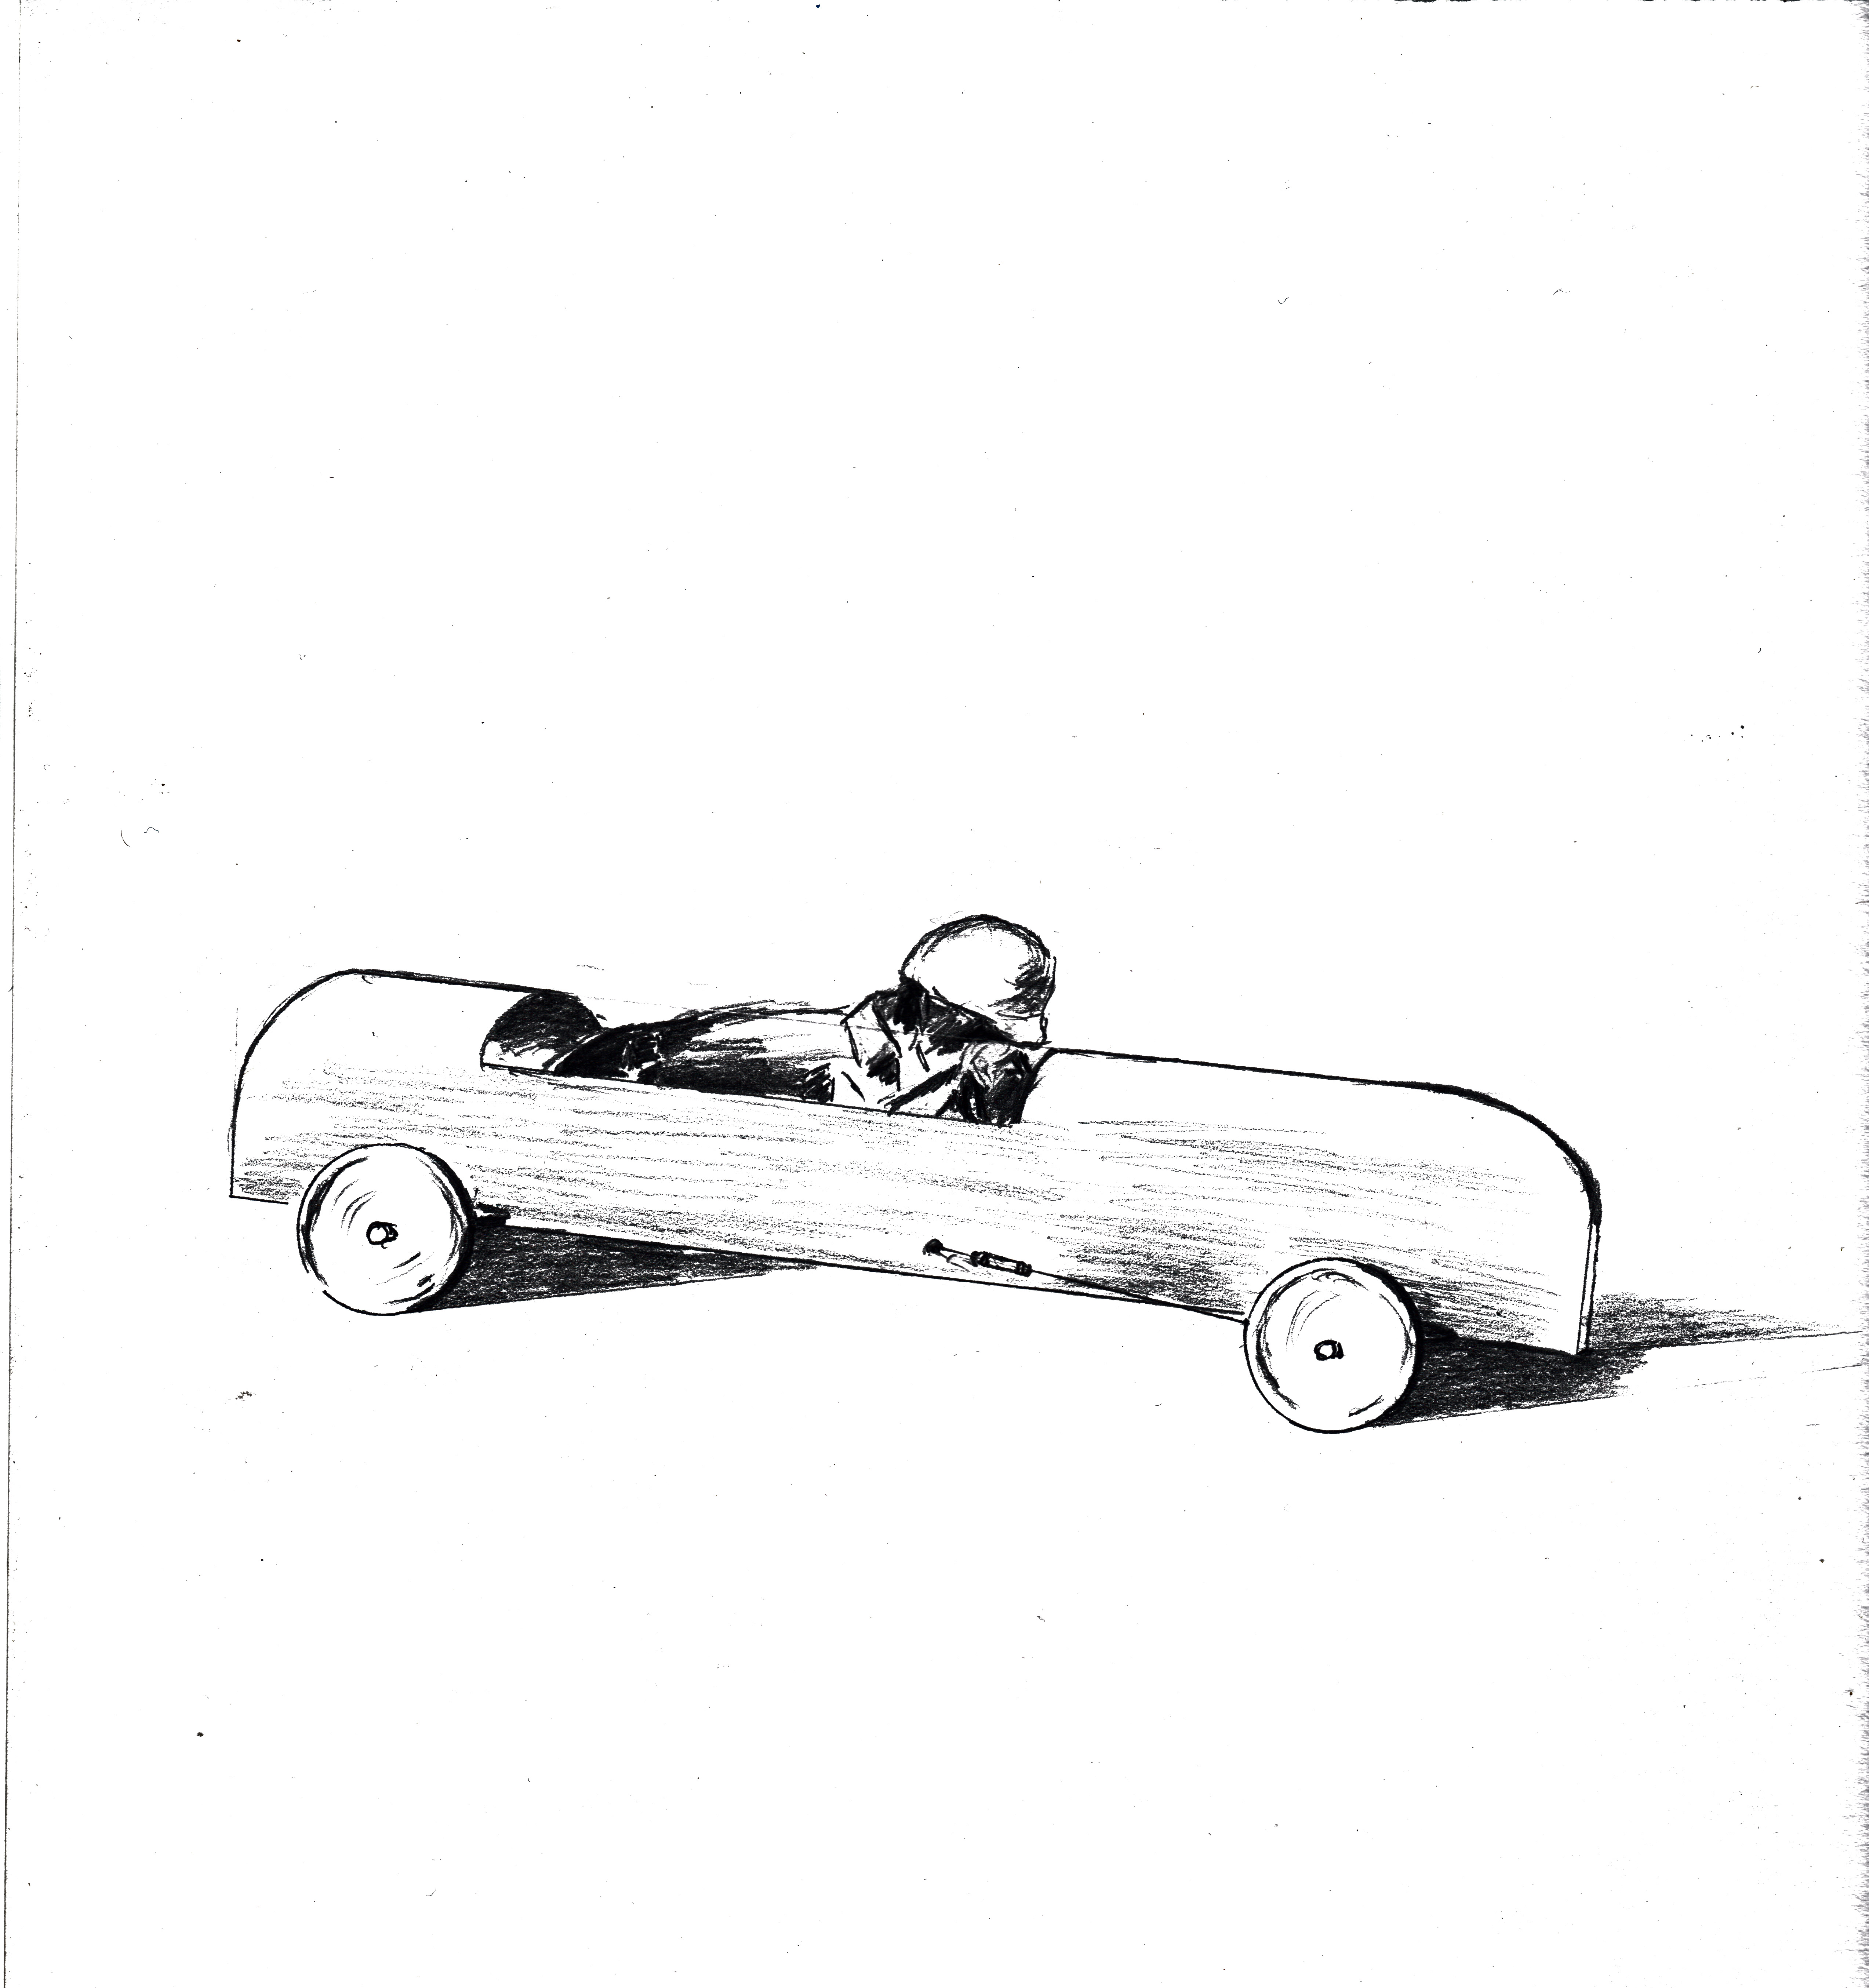 The Challenge To Design A New Soap Box Derby This Old